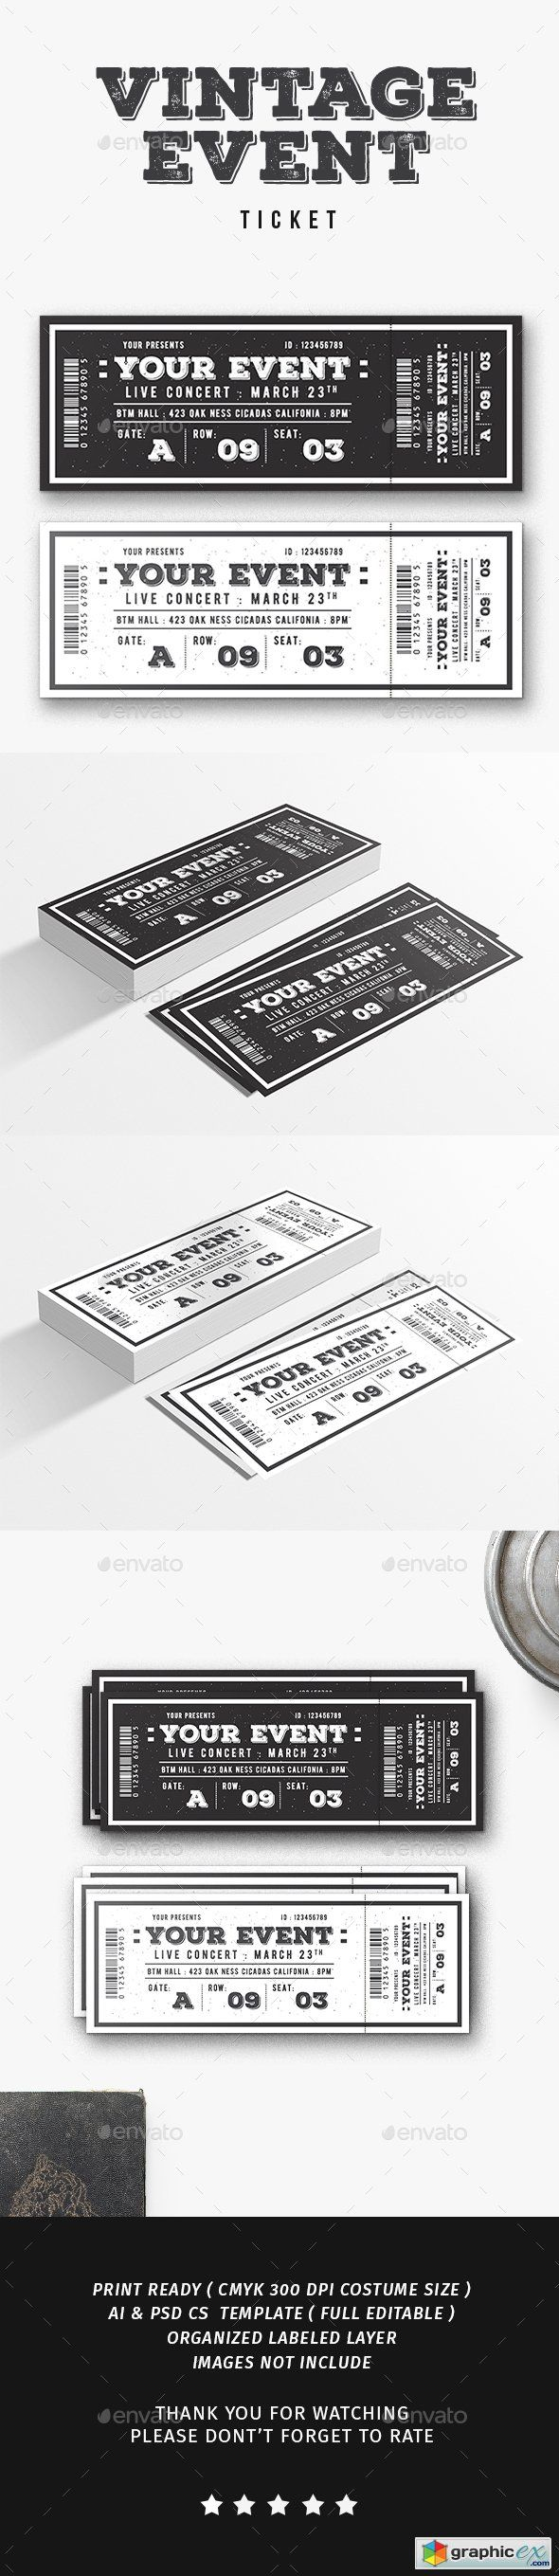 Vintage Event Ticket  stock images